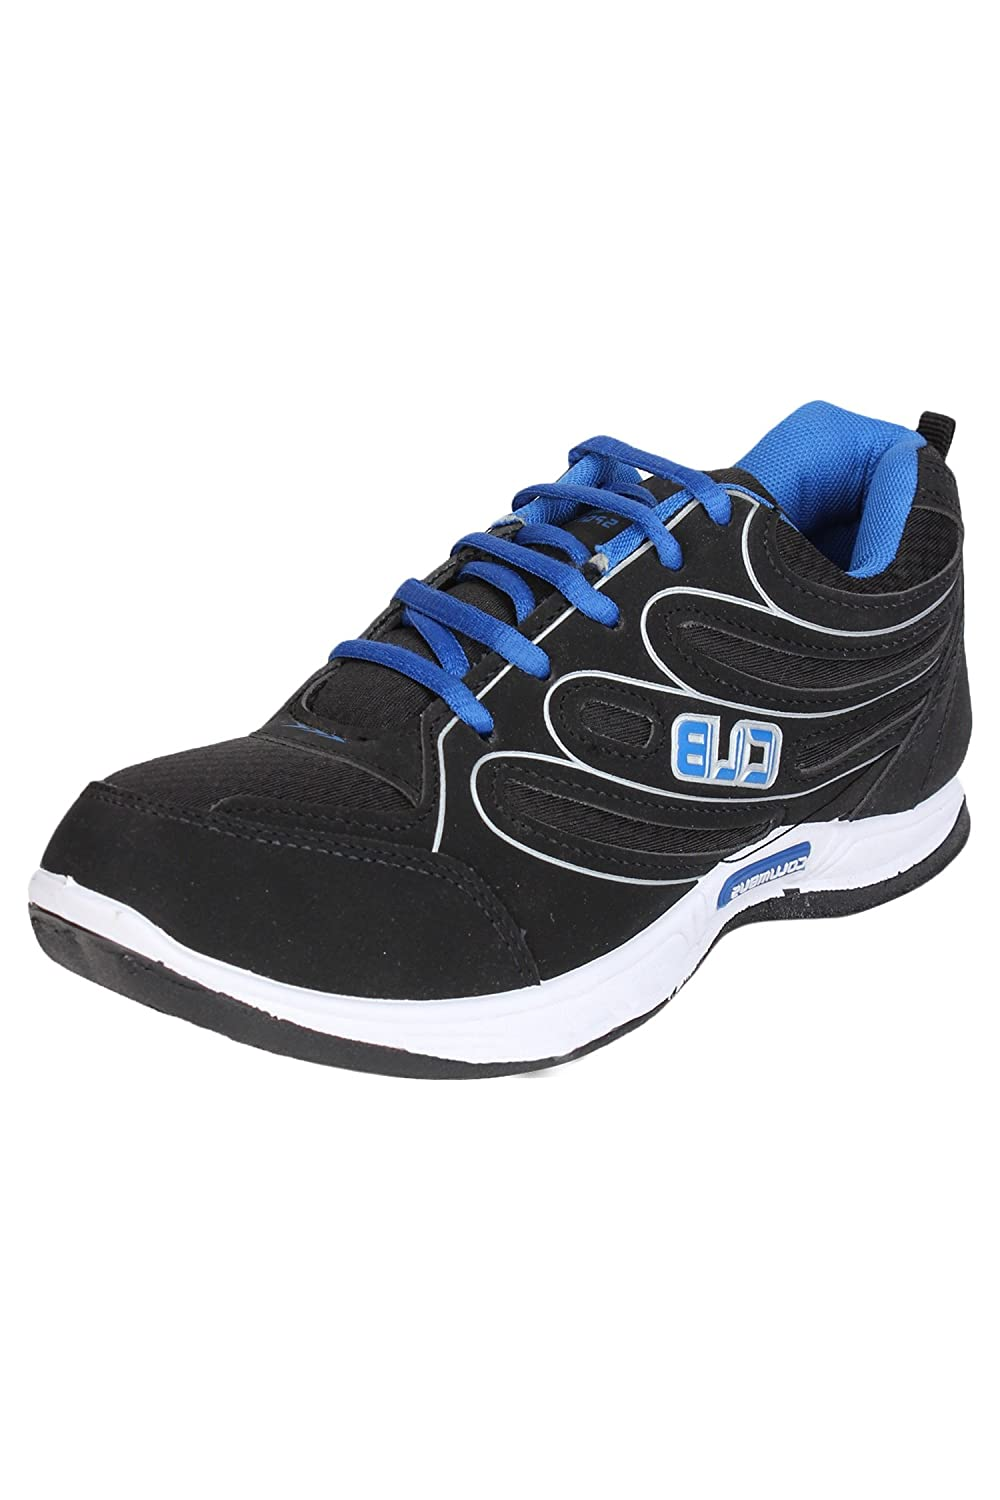 columbus black blue sports shoes available at